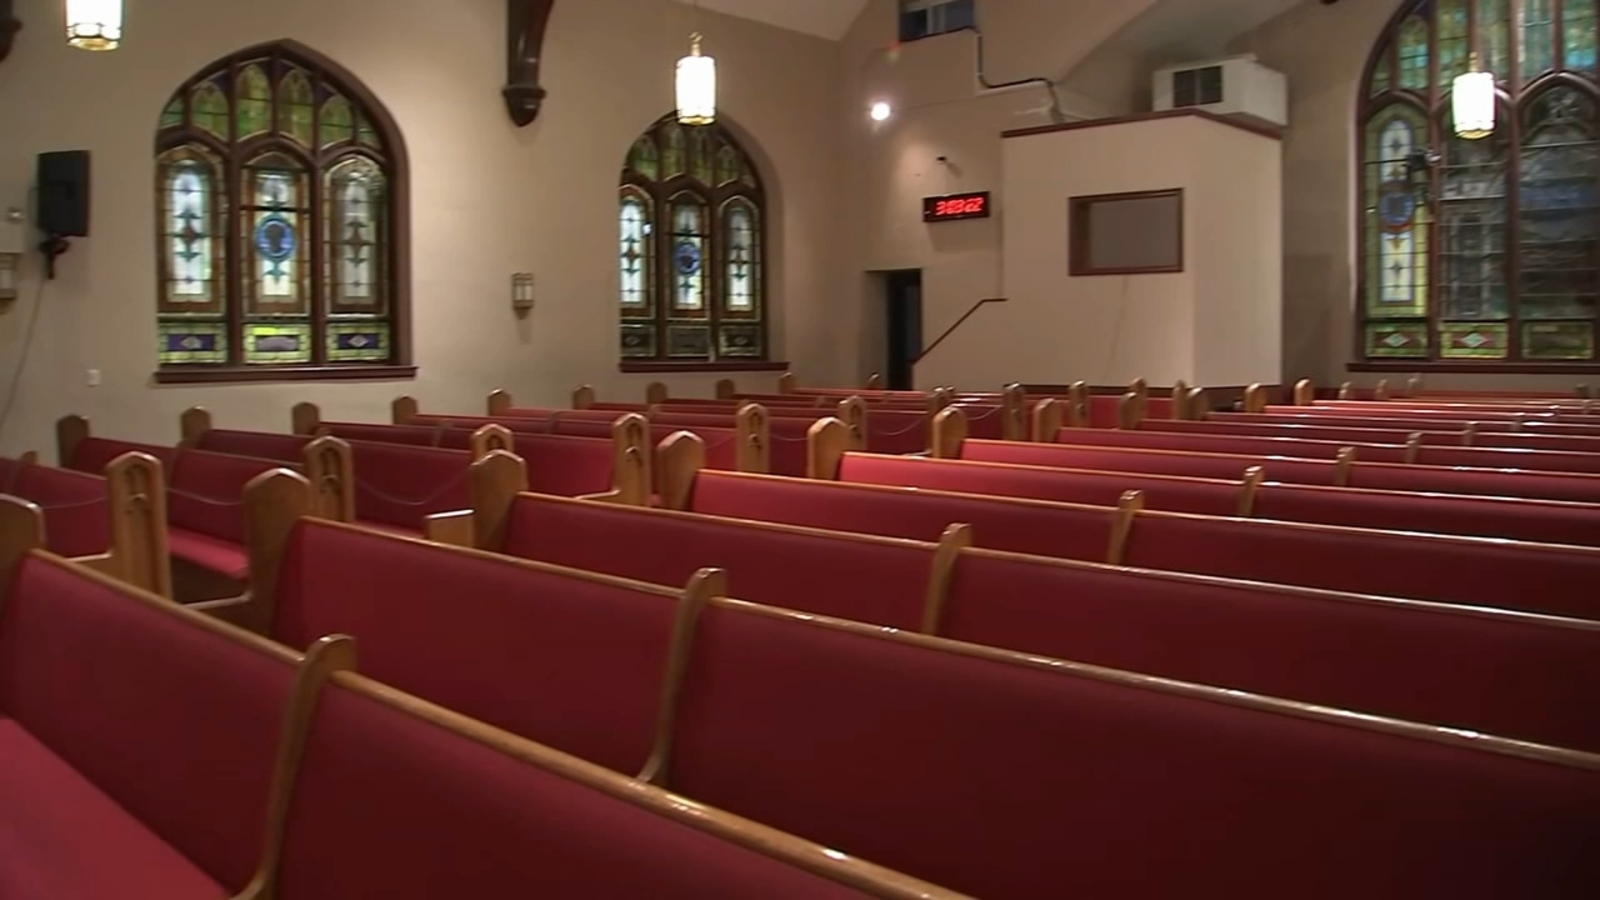 Houses of worship get presidential green light to reopen amid COVID-19